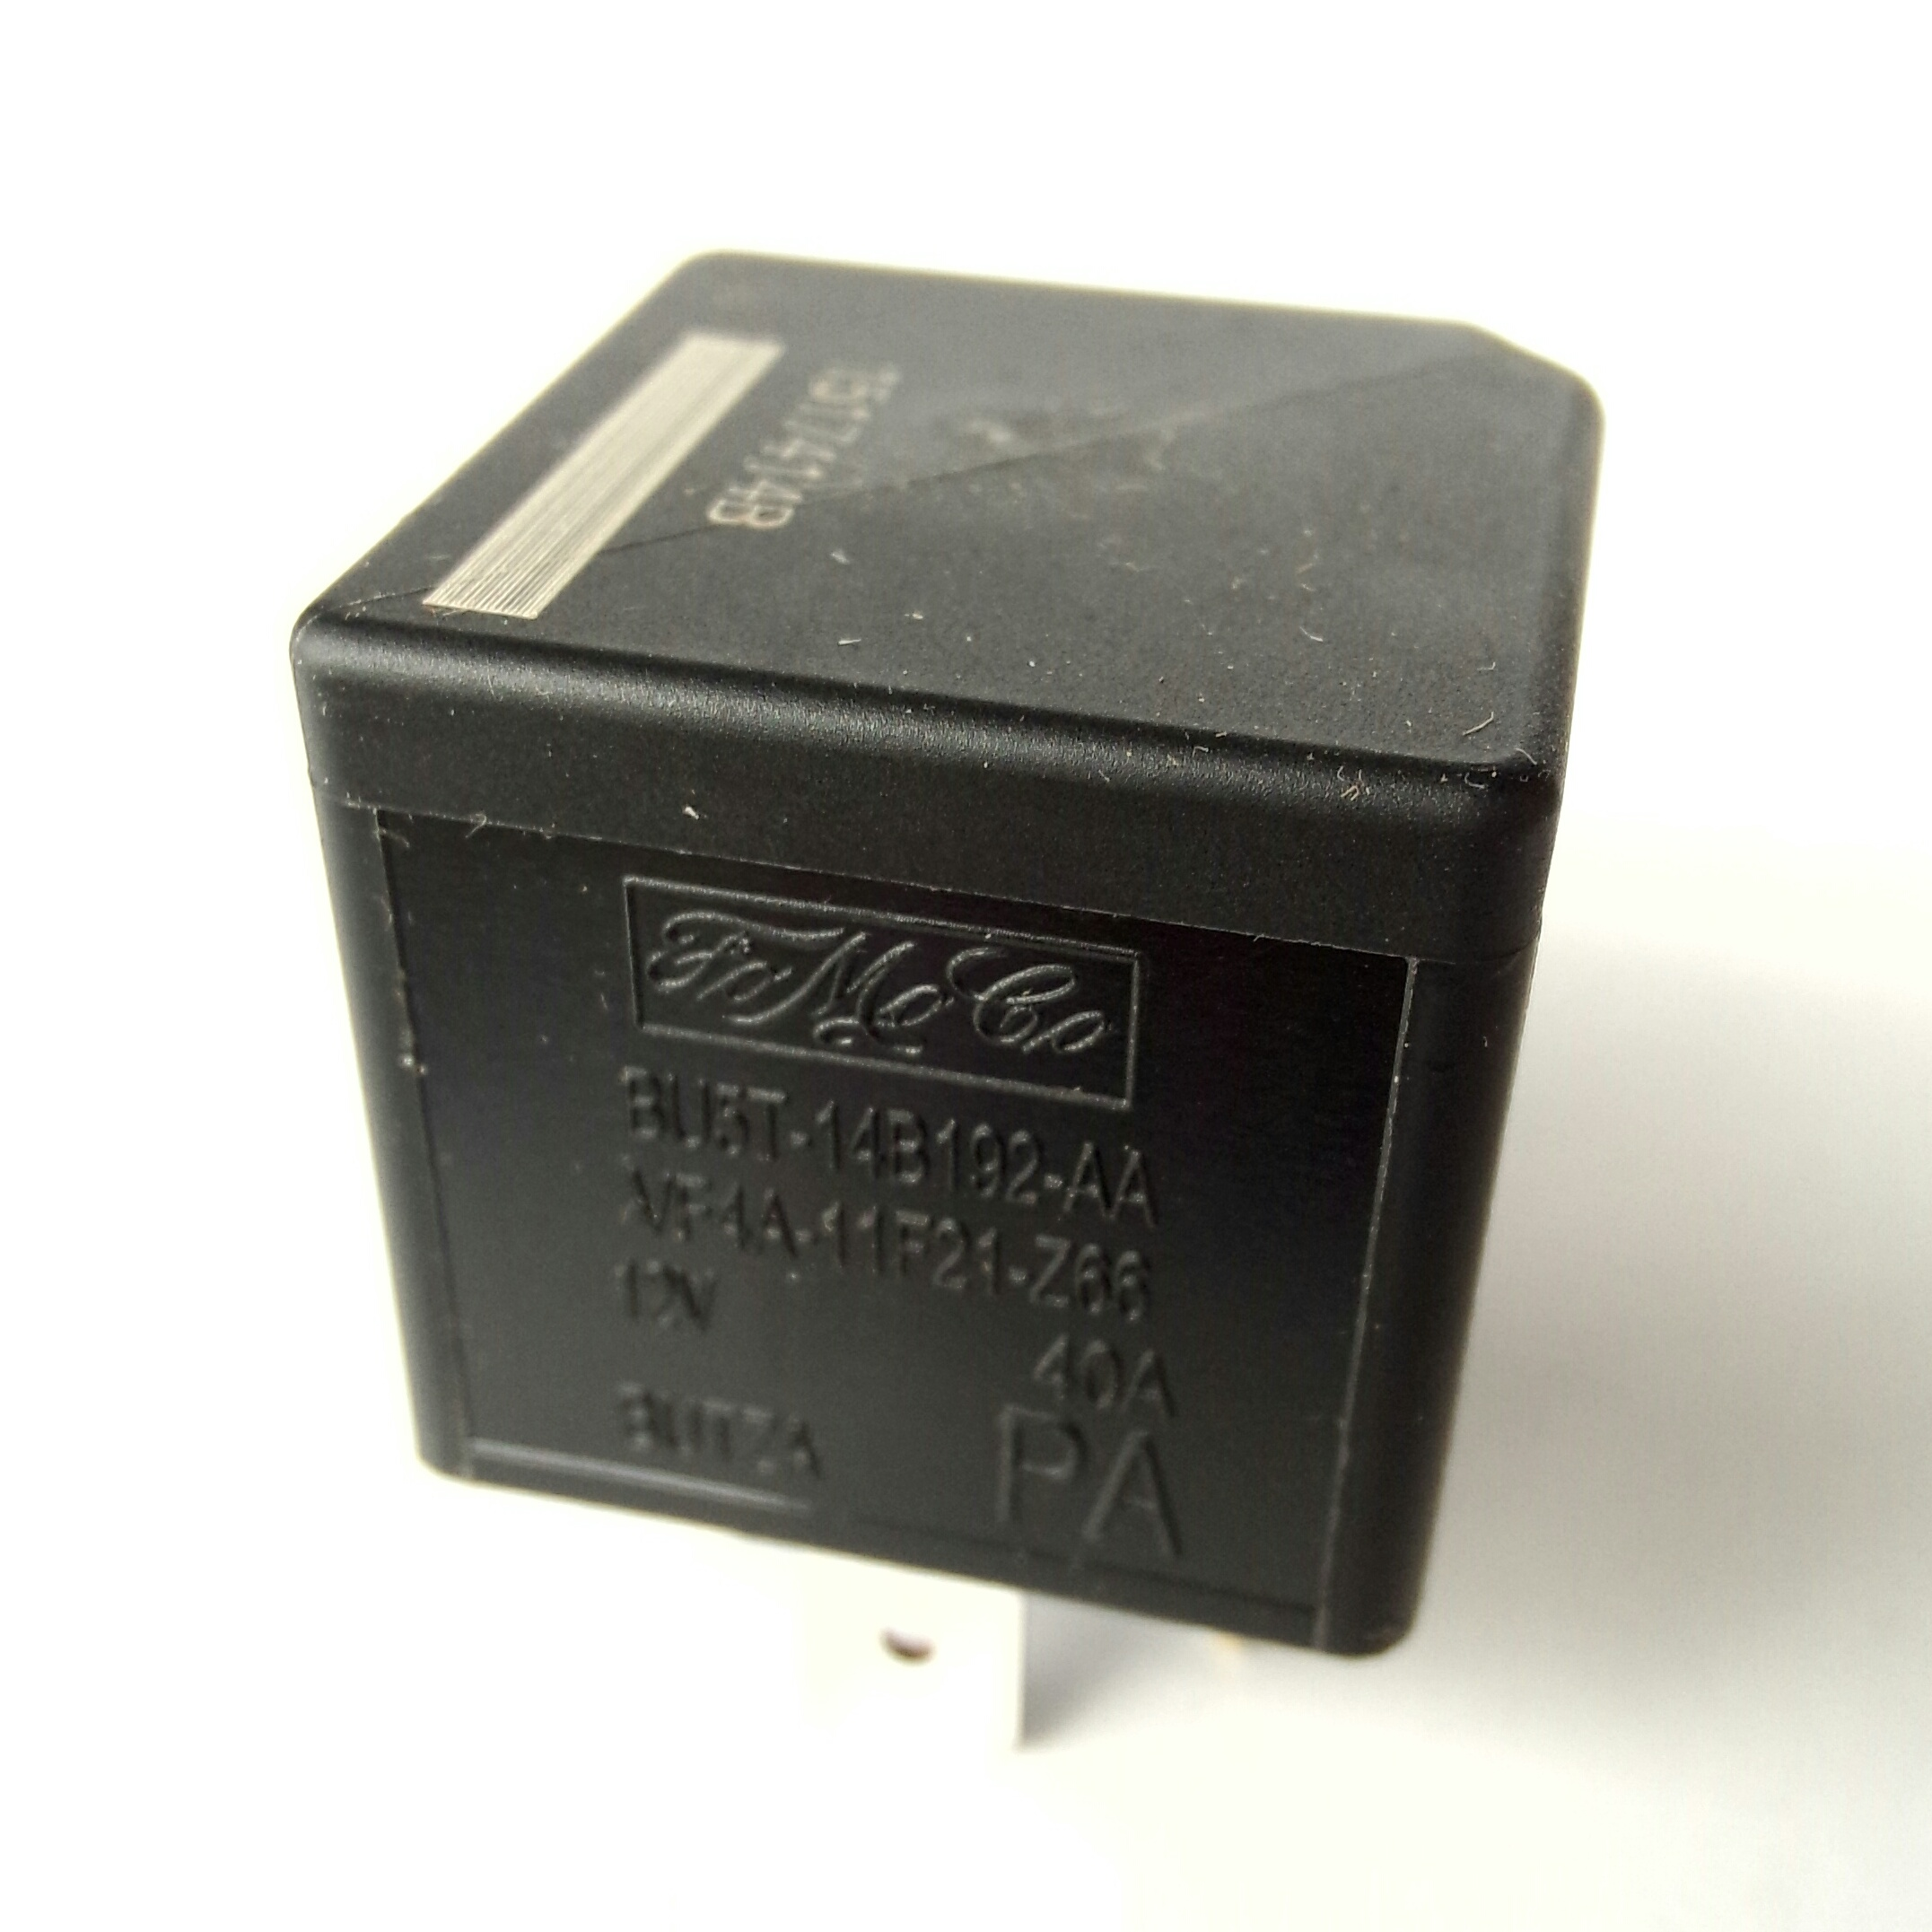 Реле 40А 12V FORD BU5T 14B192 CA VF4A-11F21-Z66 12V 40A BUTZA PA Made in Portugal